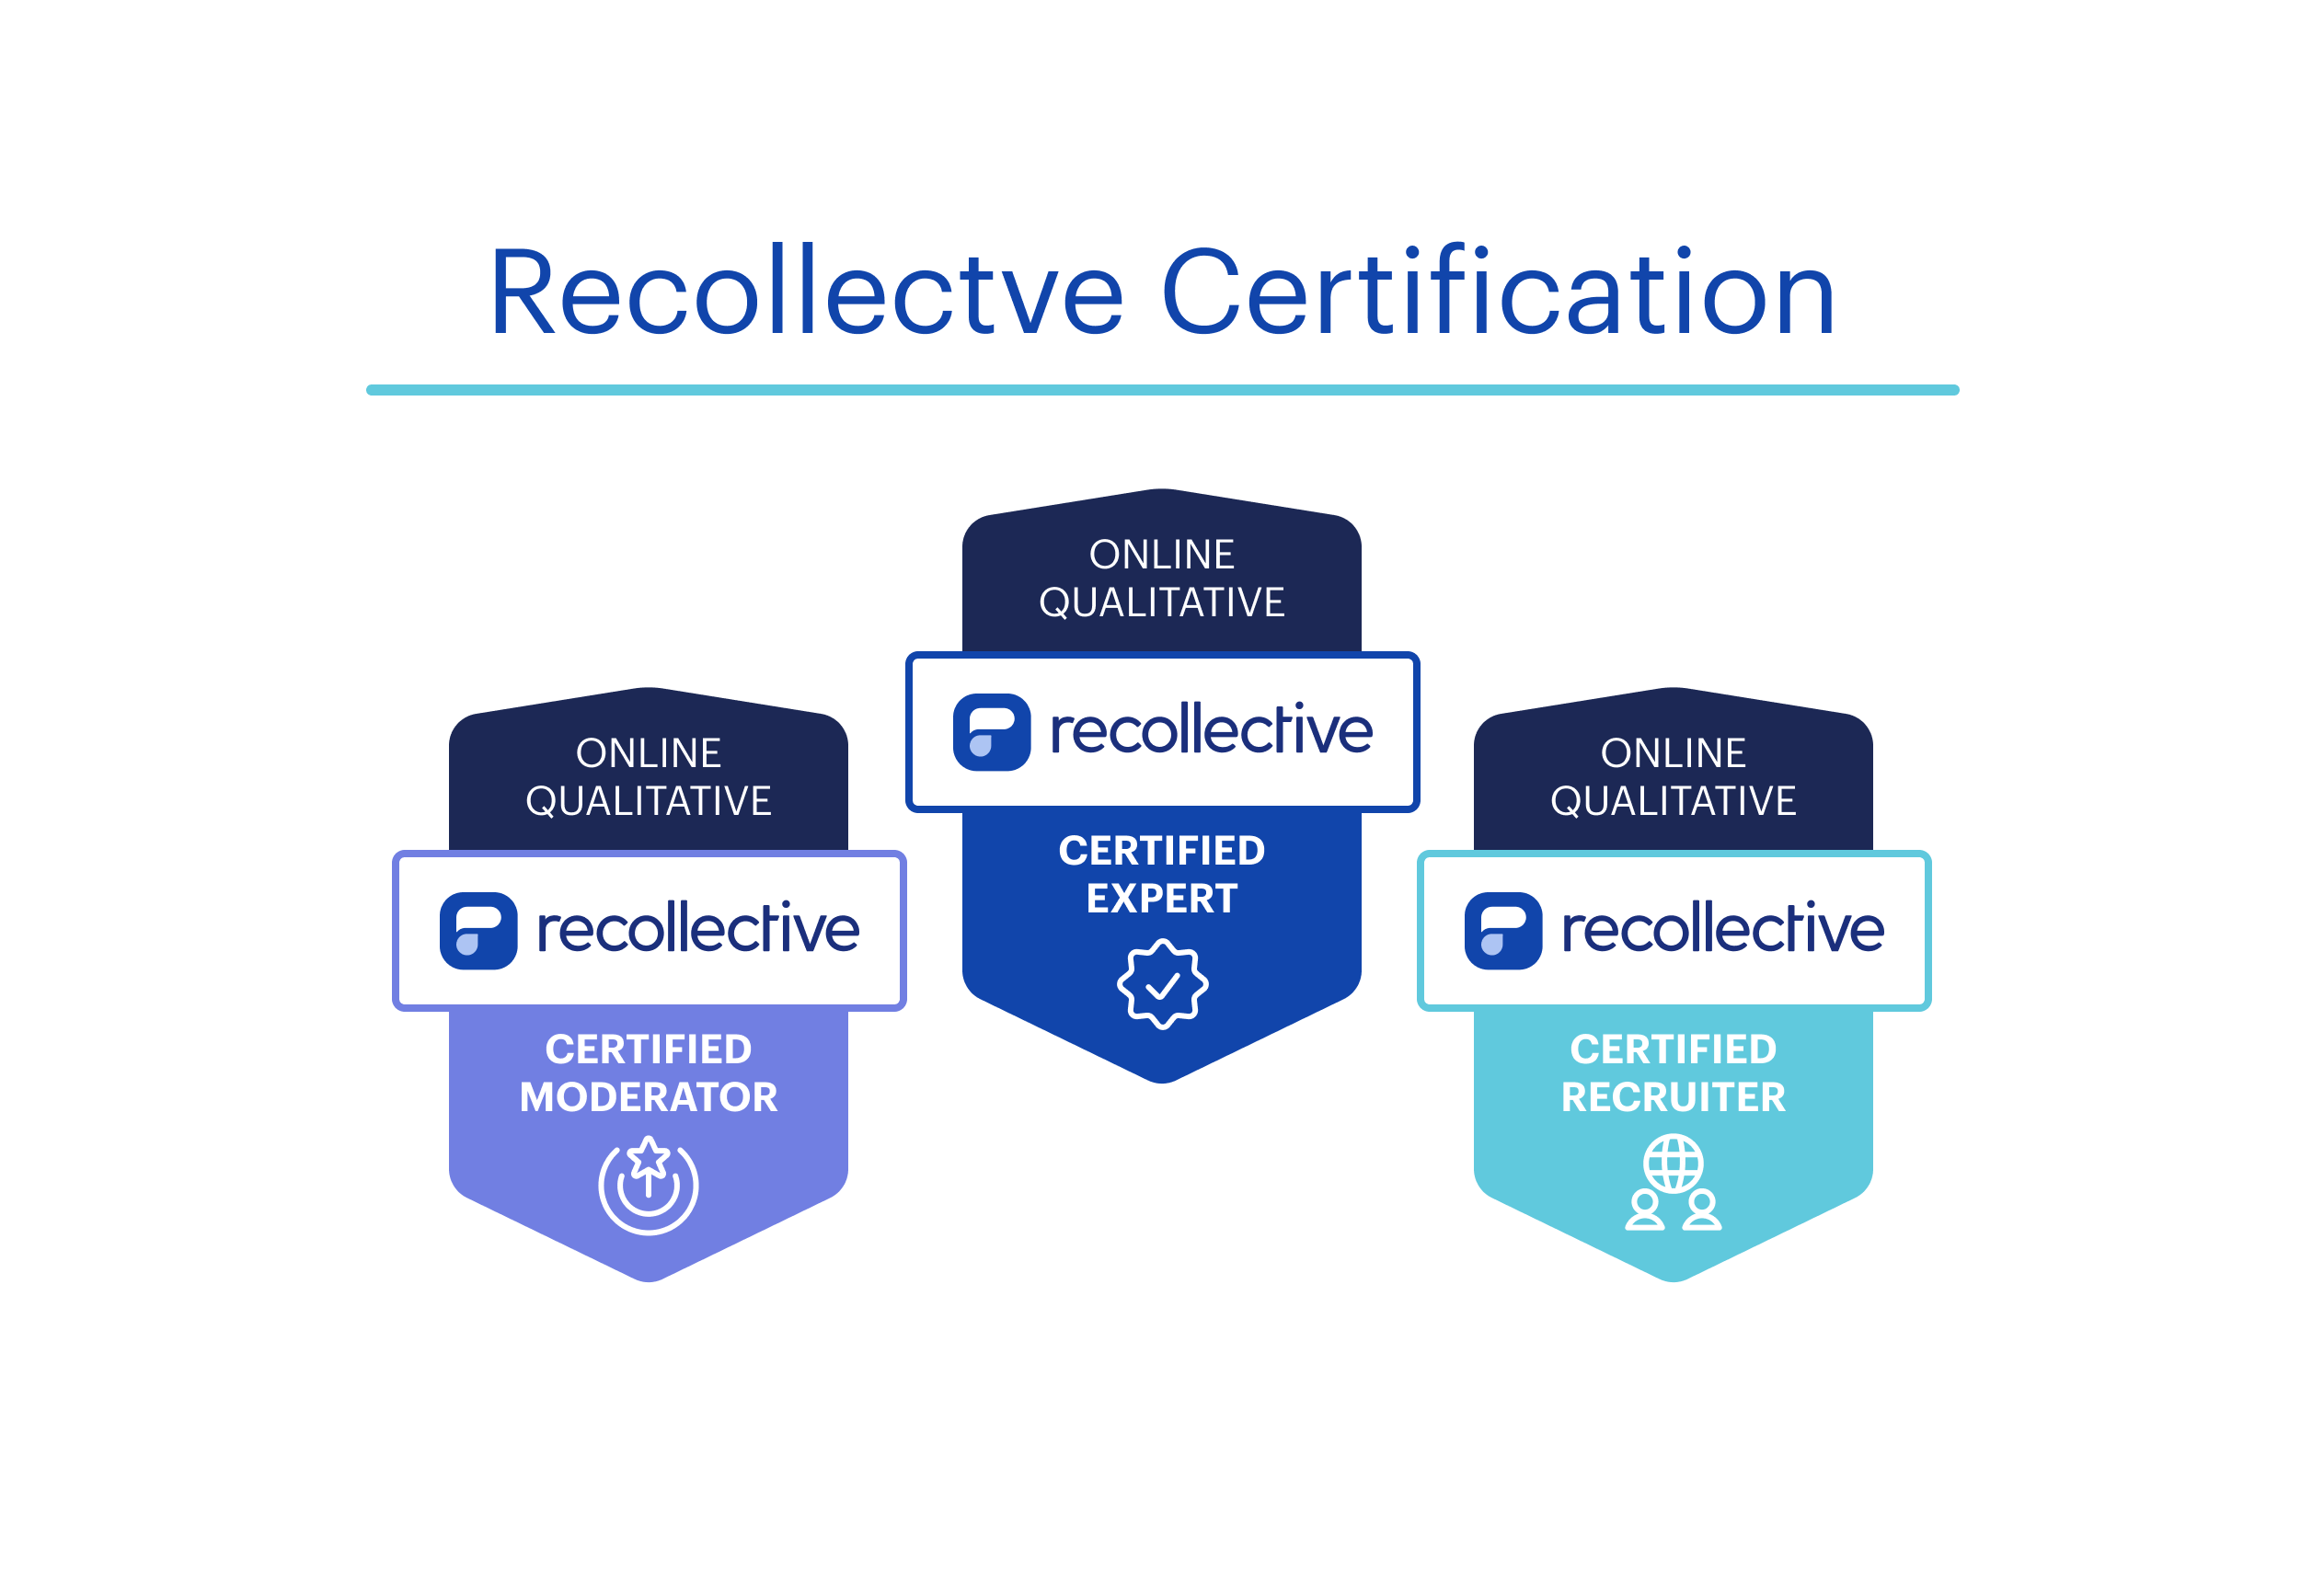 Recollective Certification